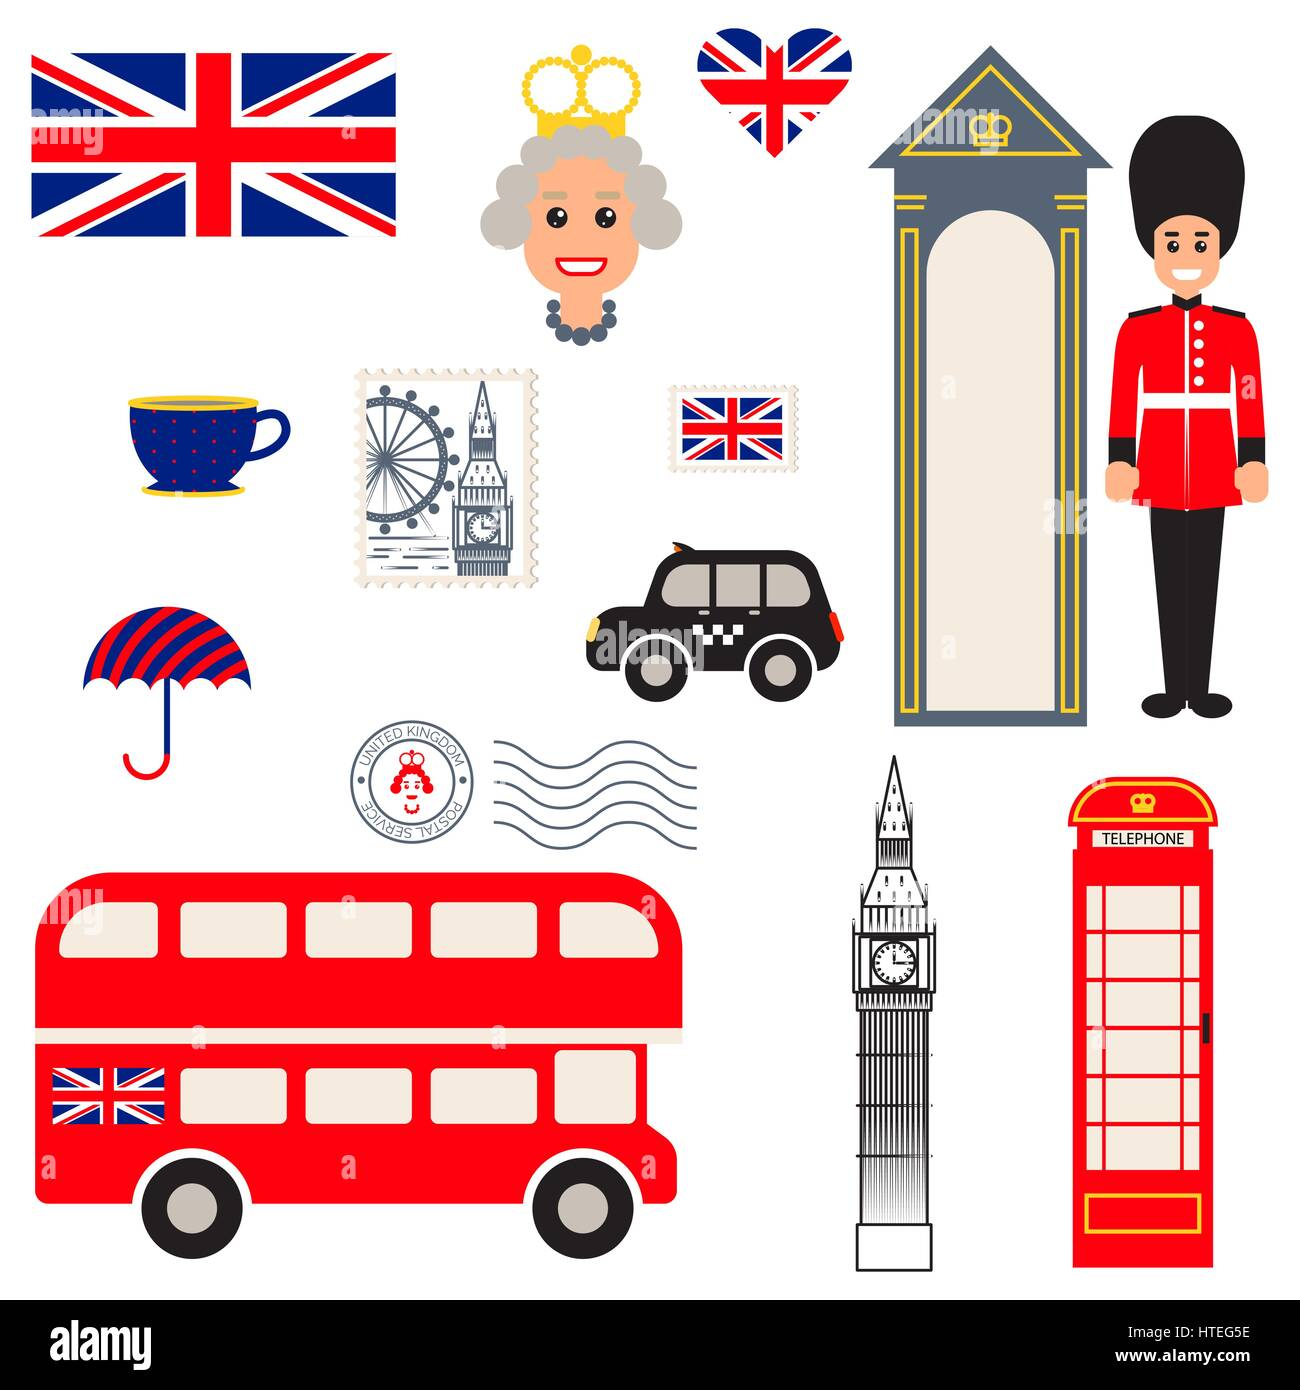 England vector traditional symbols. - Stock Image